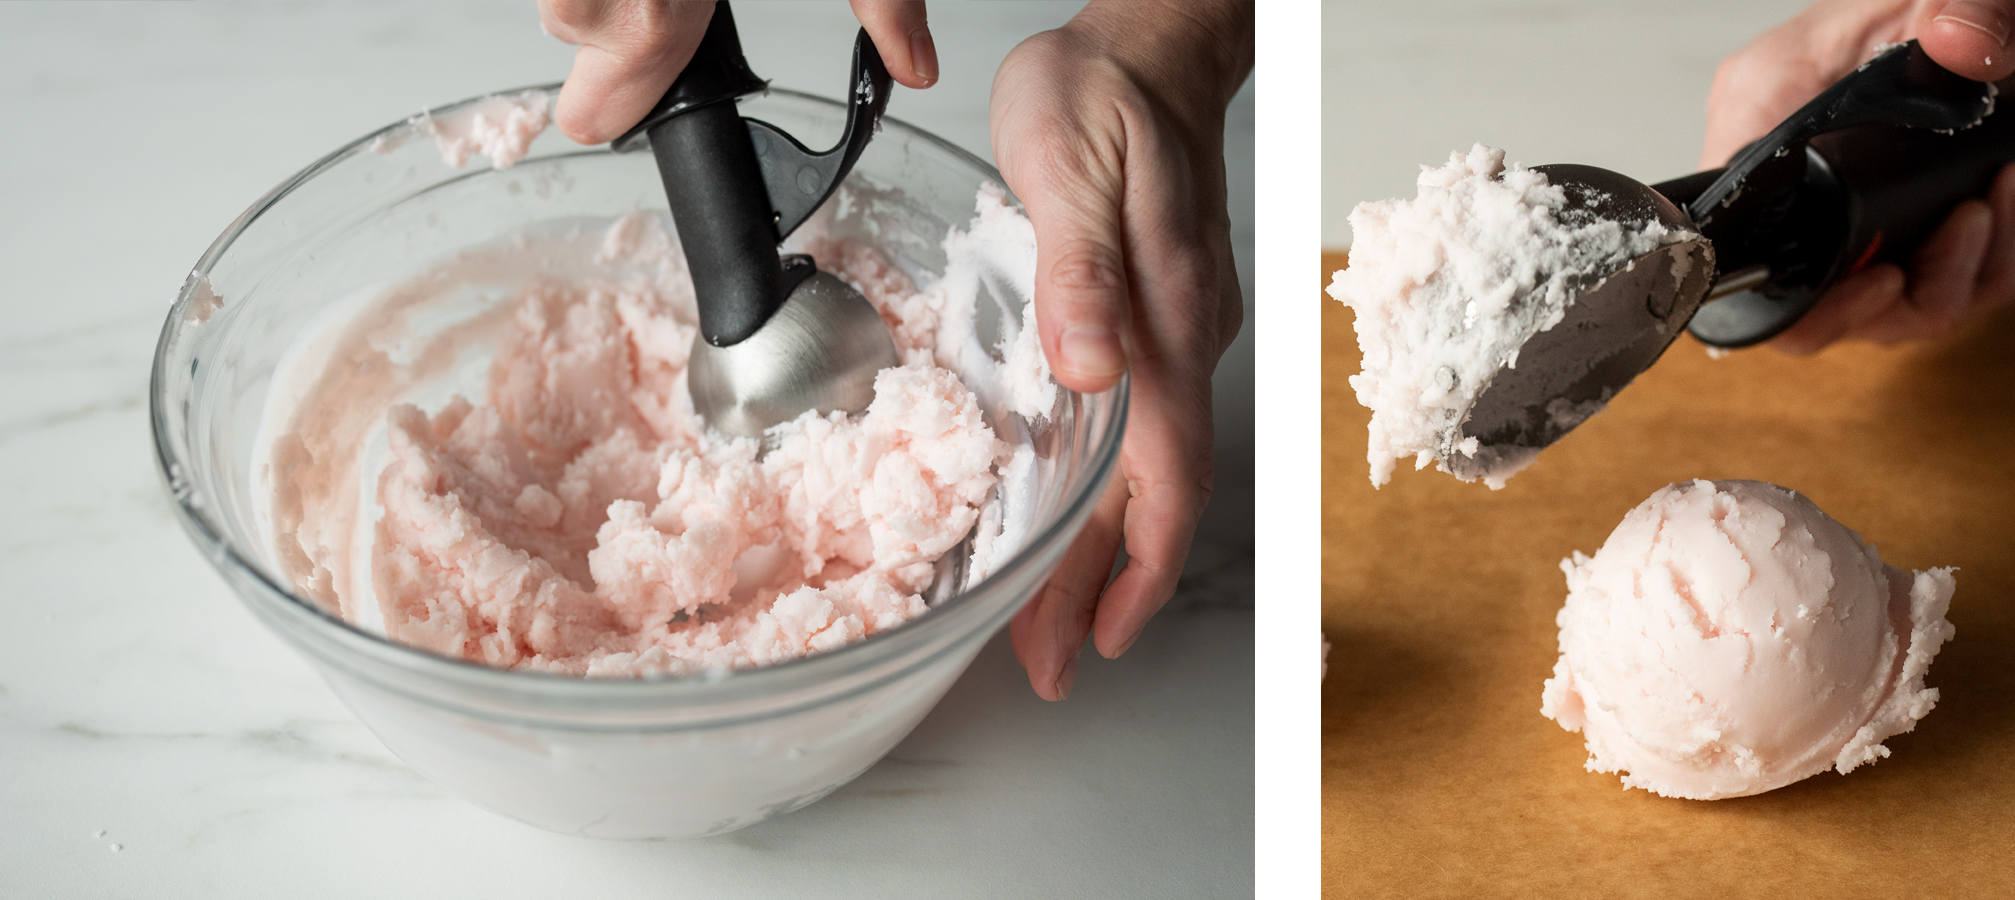 Scooping cooled soy wax with an ice cream scoop